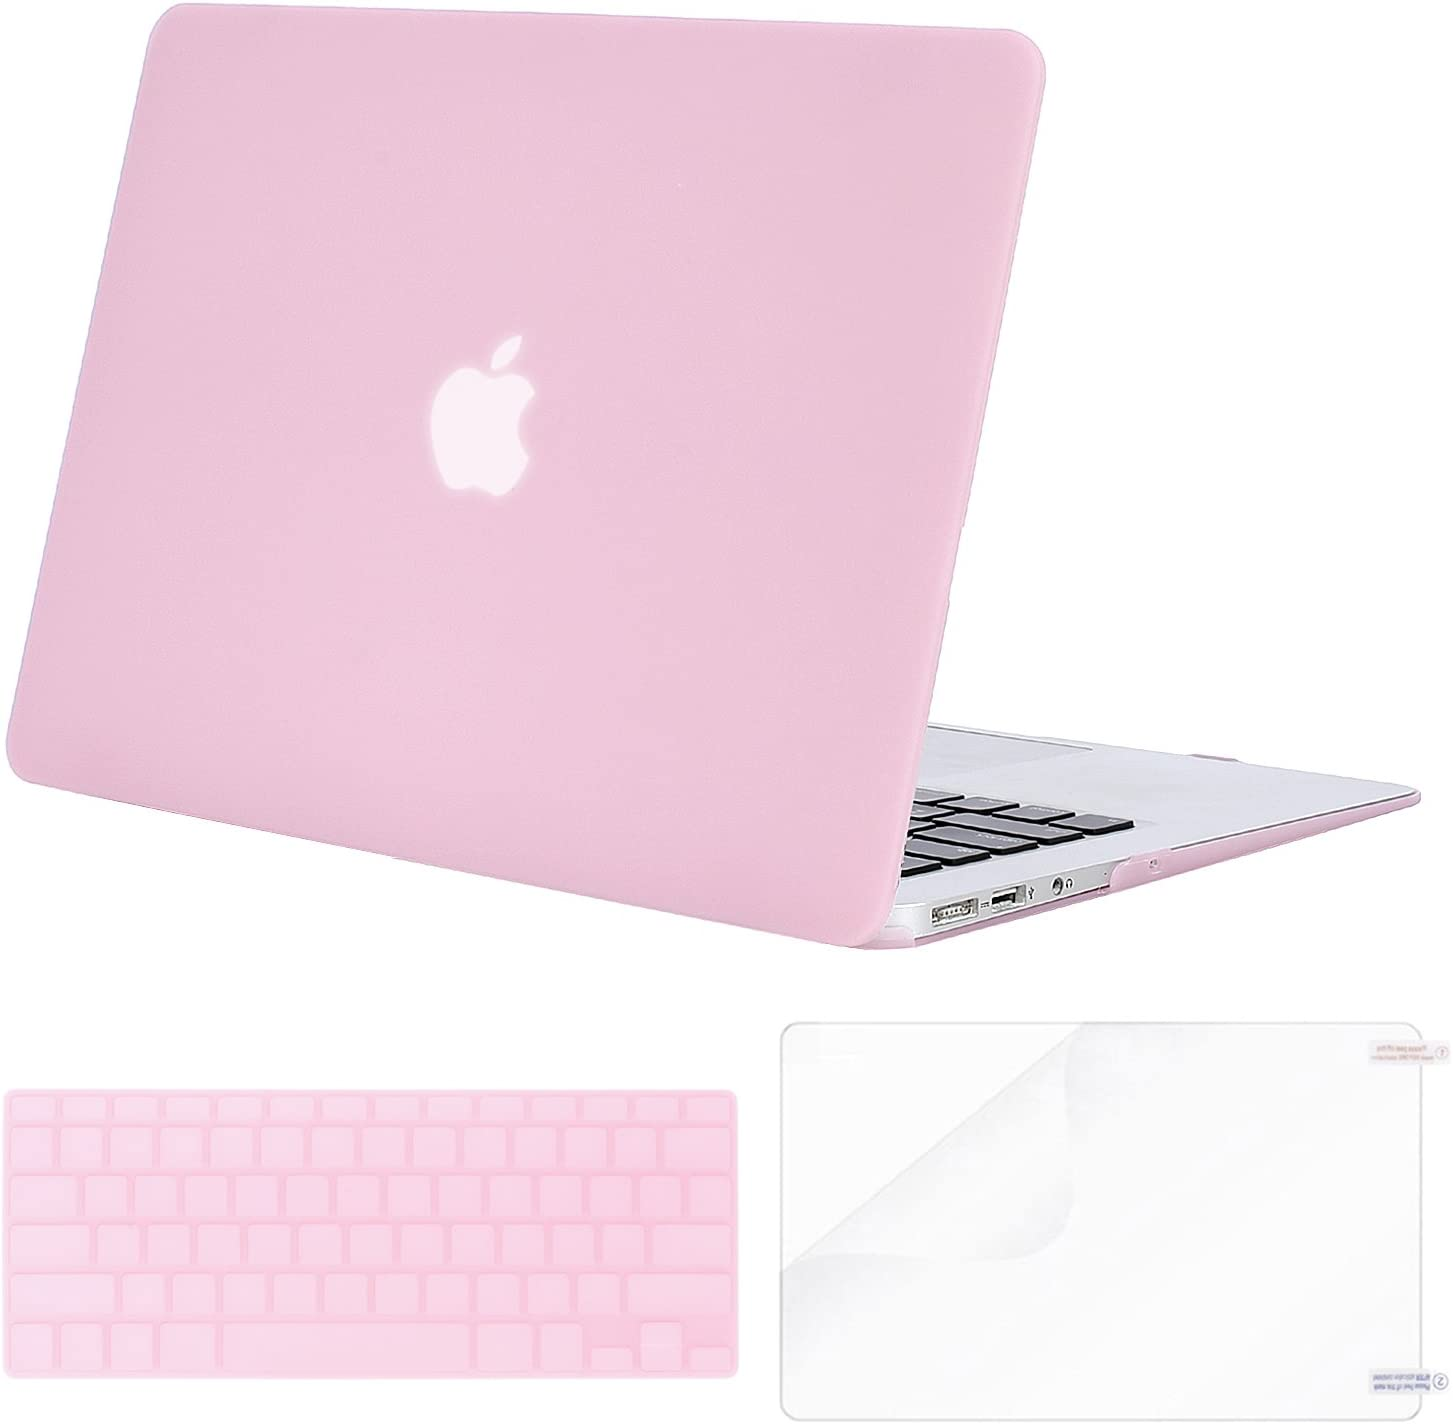 MOSISO Plastic Hard Shell Case & Keyboard Cover & Screen Protector Only Compatible with MacBook Air 13 inch (Models: A1369 & A1466, Older Version 2010-2017 Release), Clear Pink